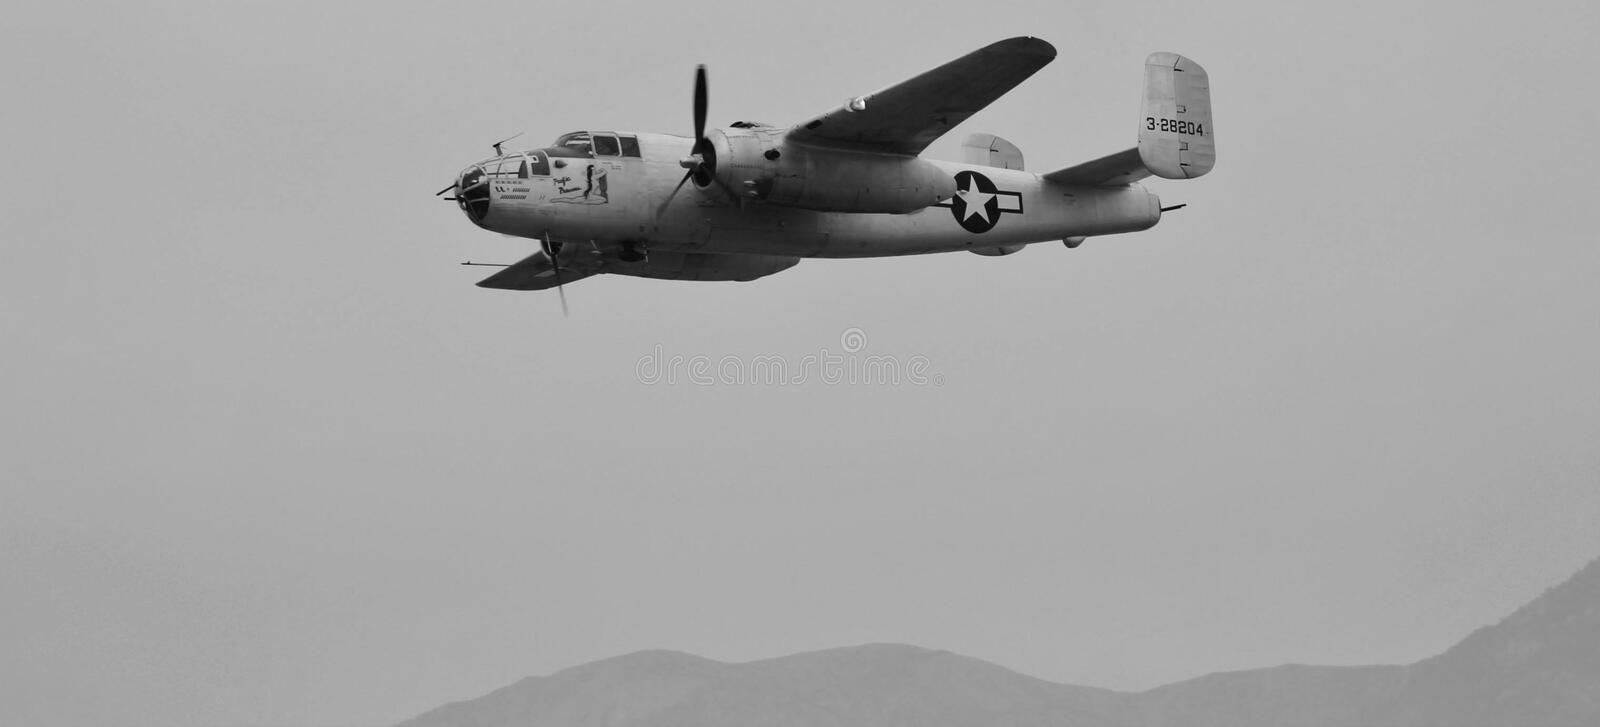 Military Plane. This is a black and white photo of a classic United States military plane in flight with mountains in the background royalty free stock image